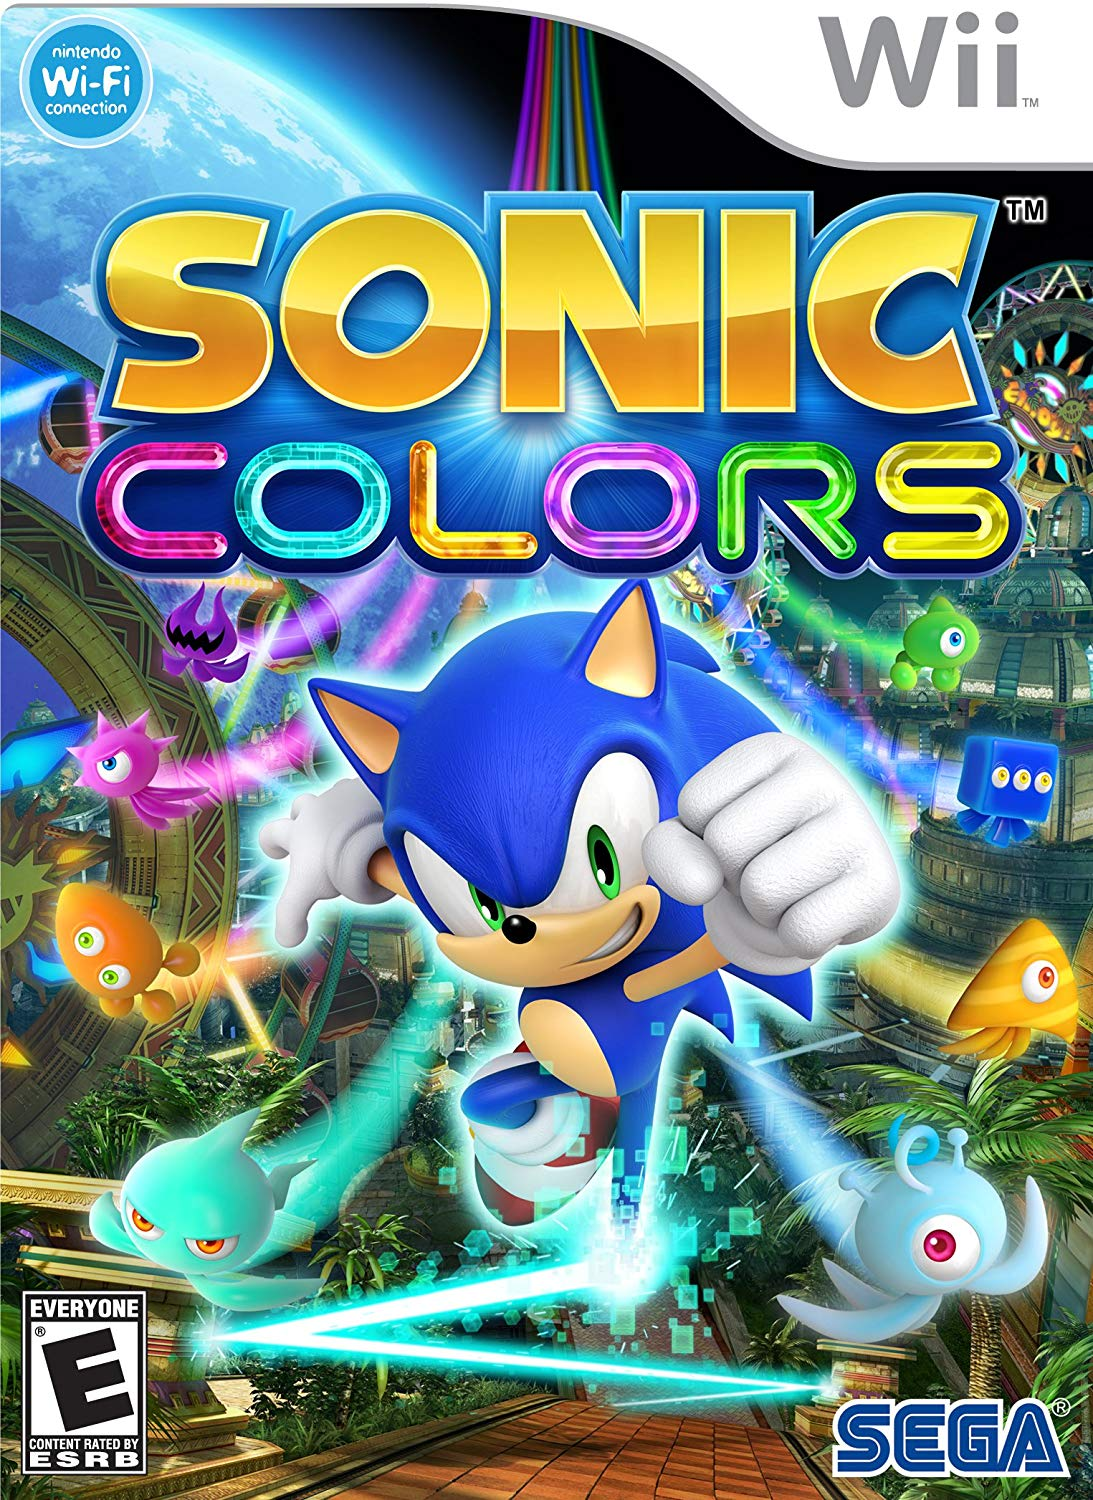 Image result for sonic colors wii box